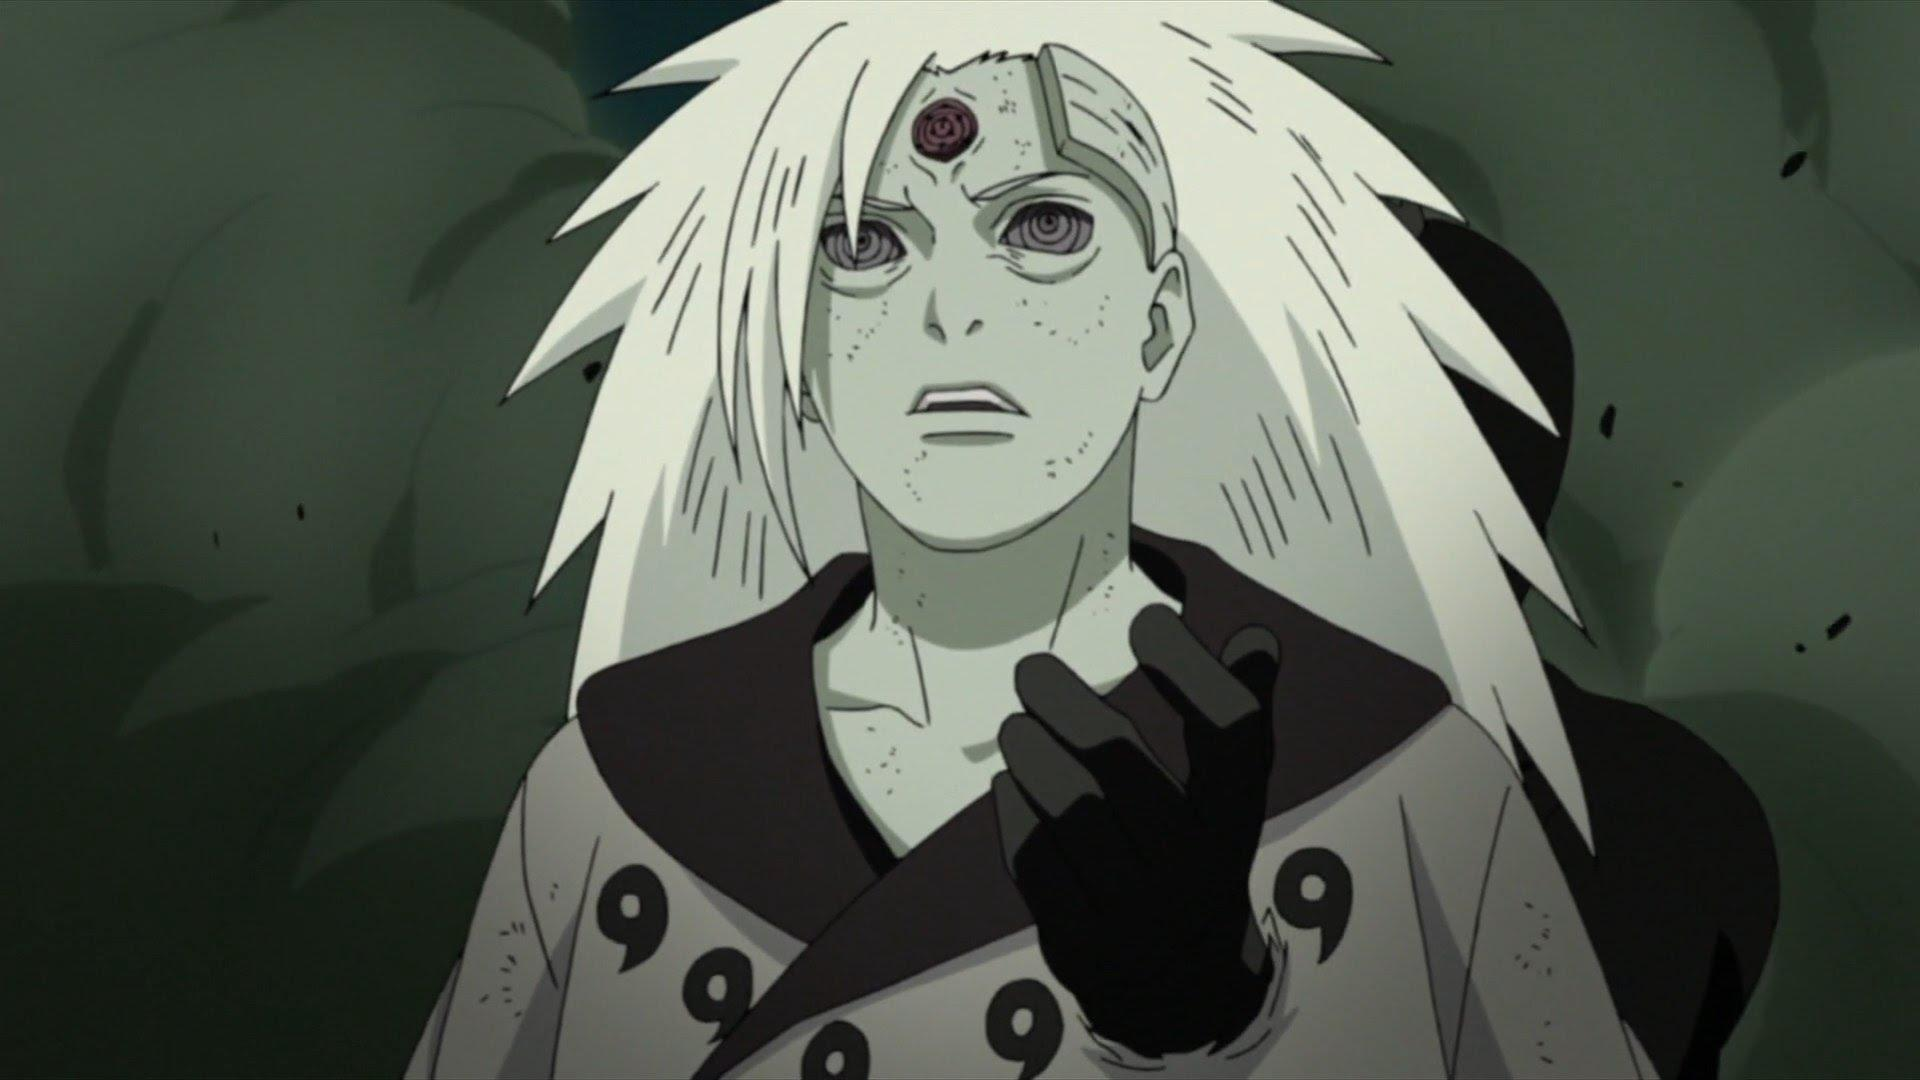 What has Madara turned into when Black Zetsu killed him?